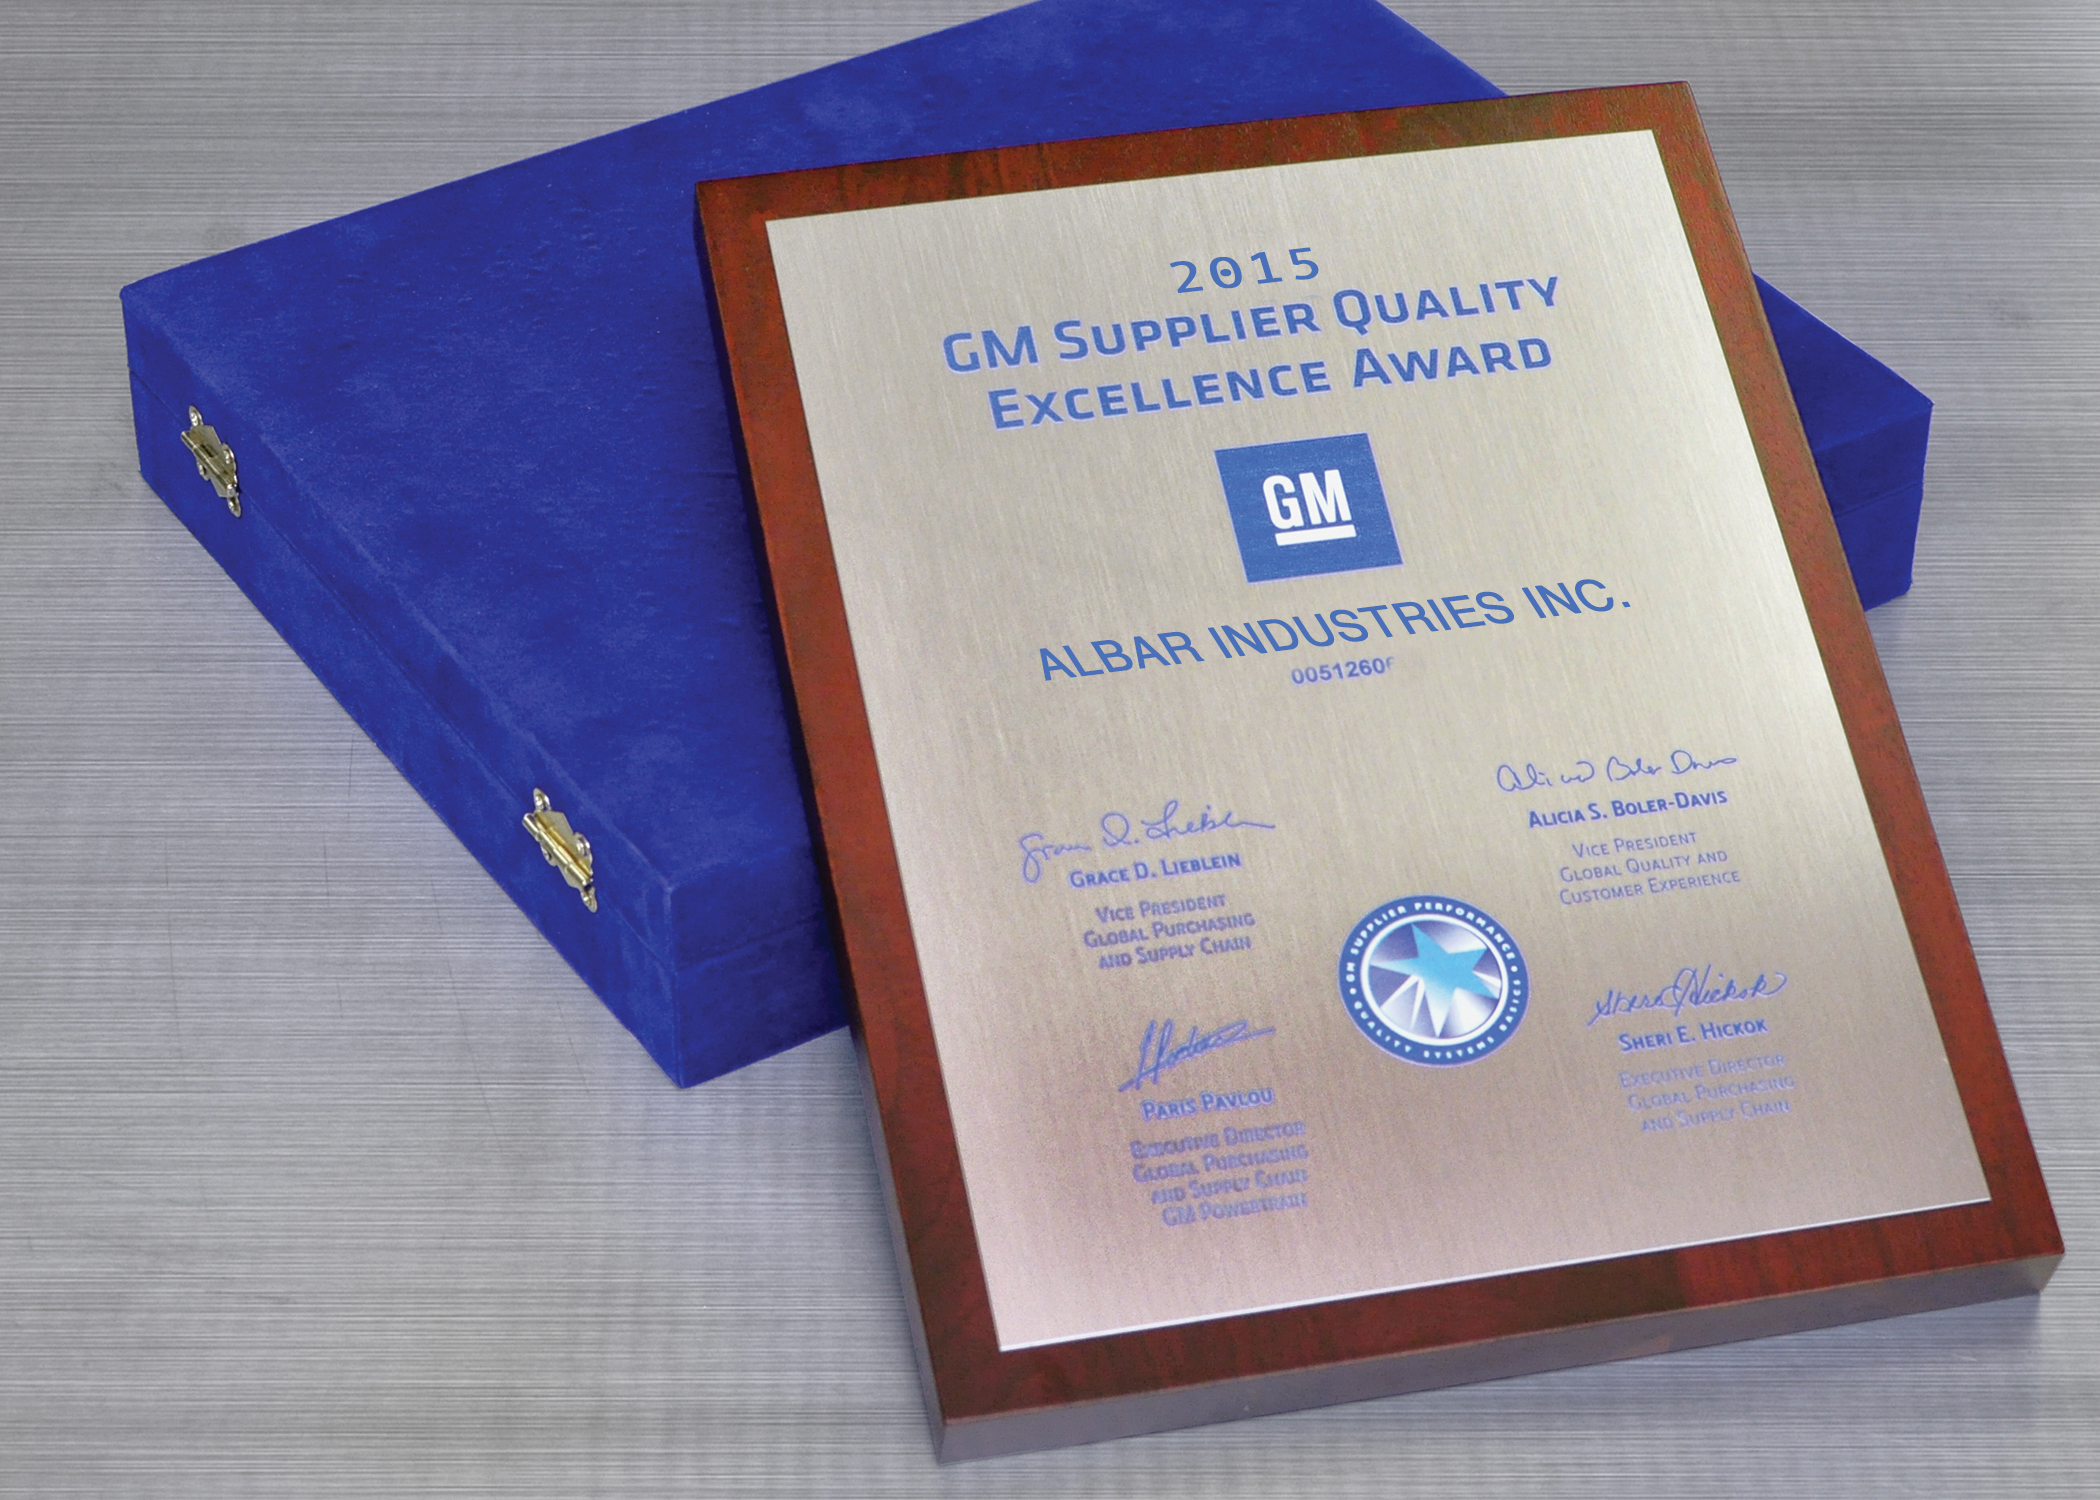 GM-Supplier-Excellence-Award-high1.jpg